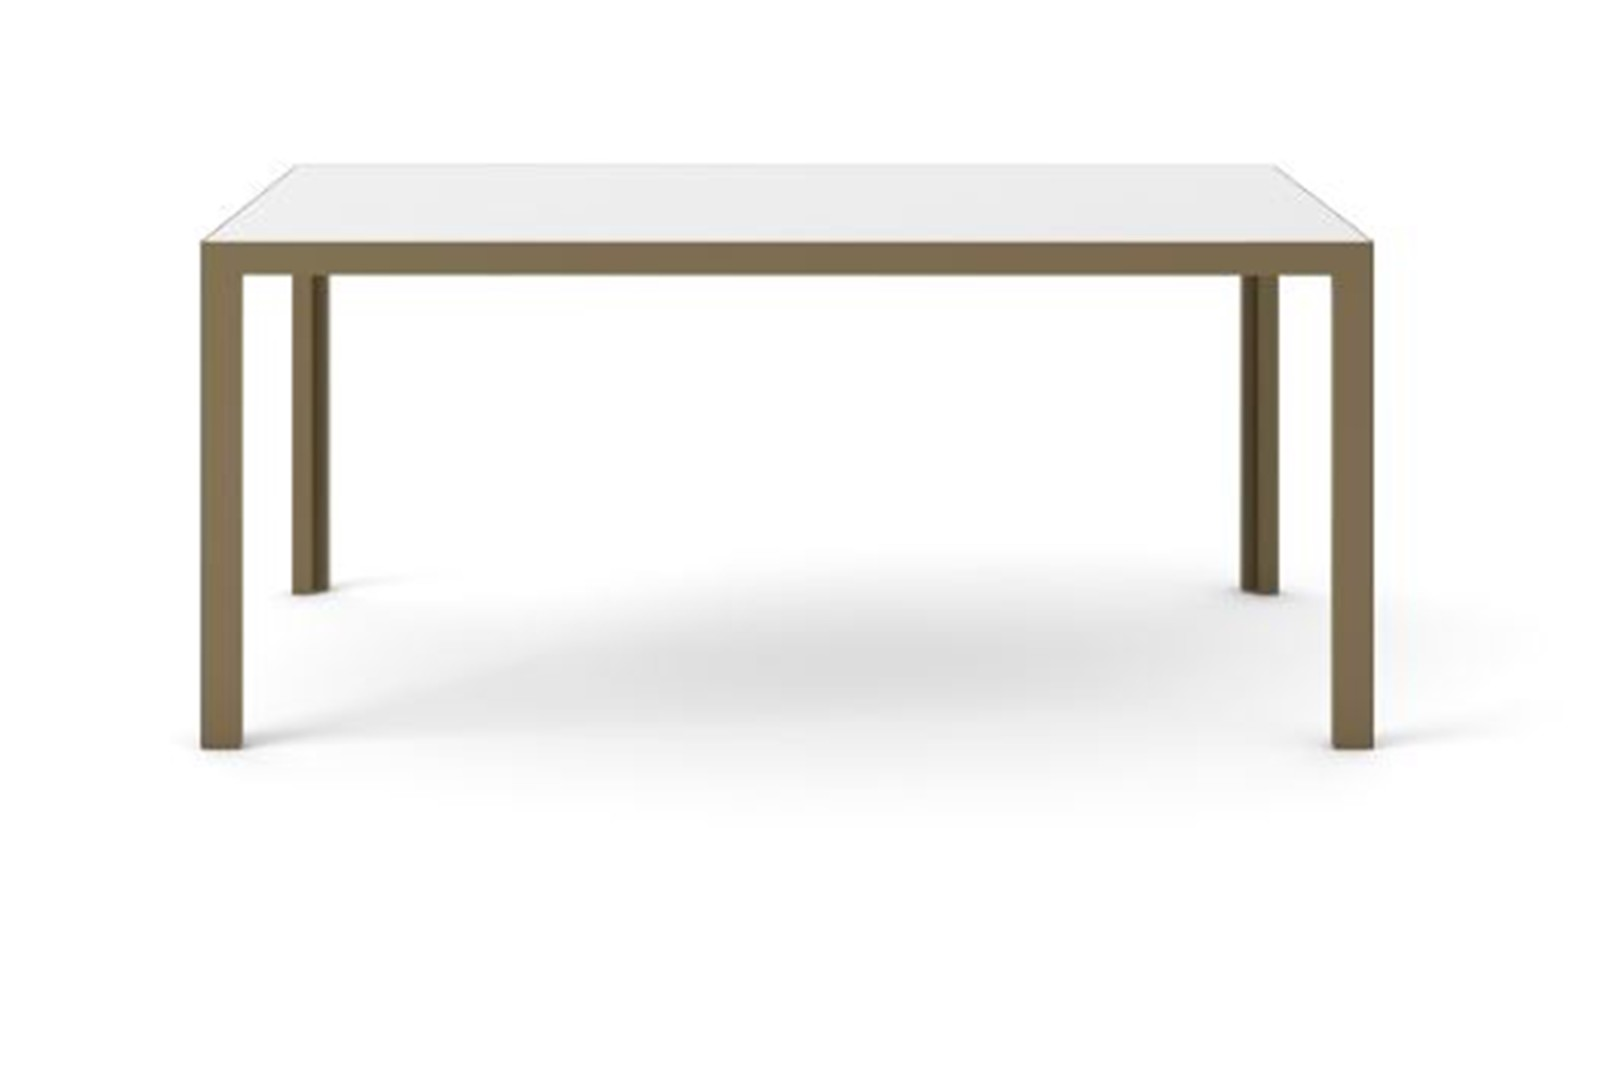 Dénia Dining Table, Rectangular Bronze Anodised Aluminium, White Open Pore Lacquered On Oak, 200